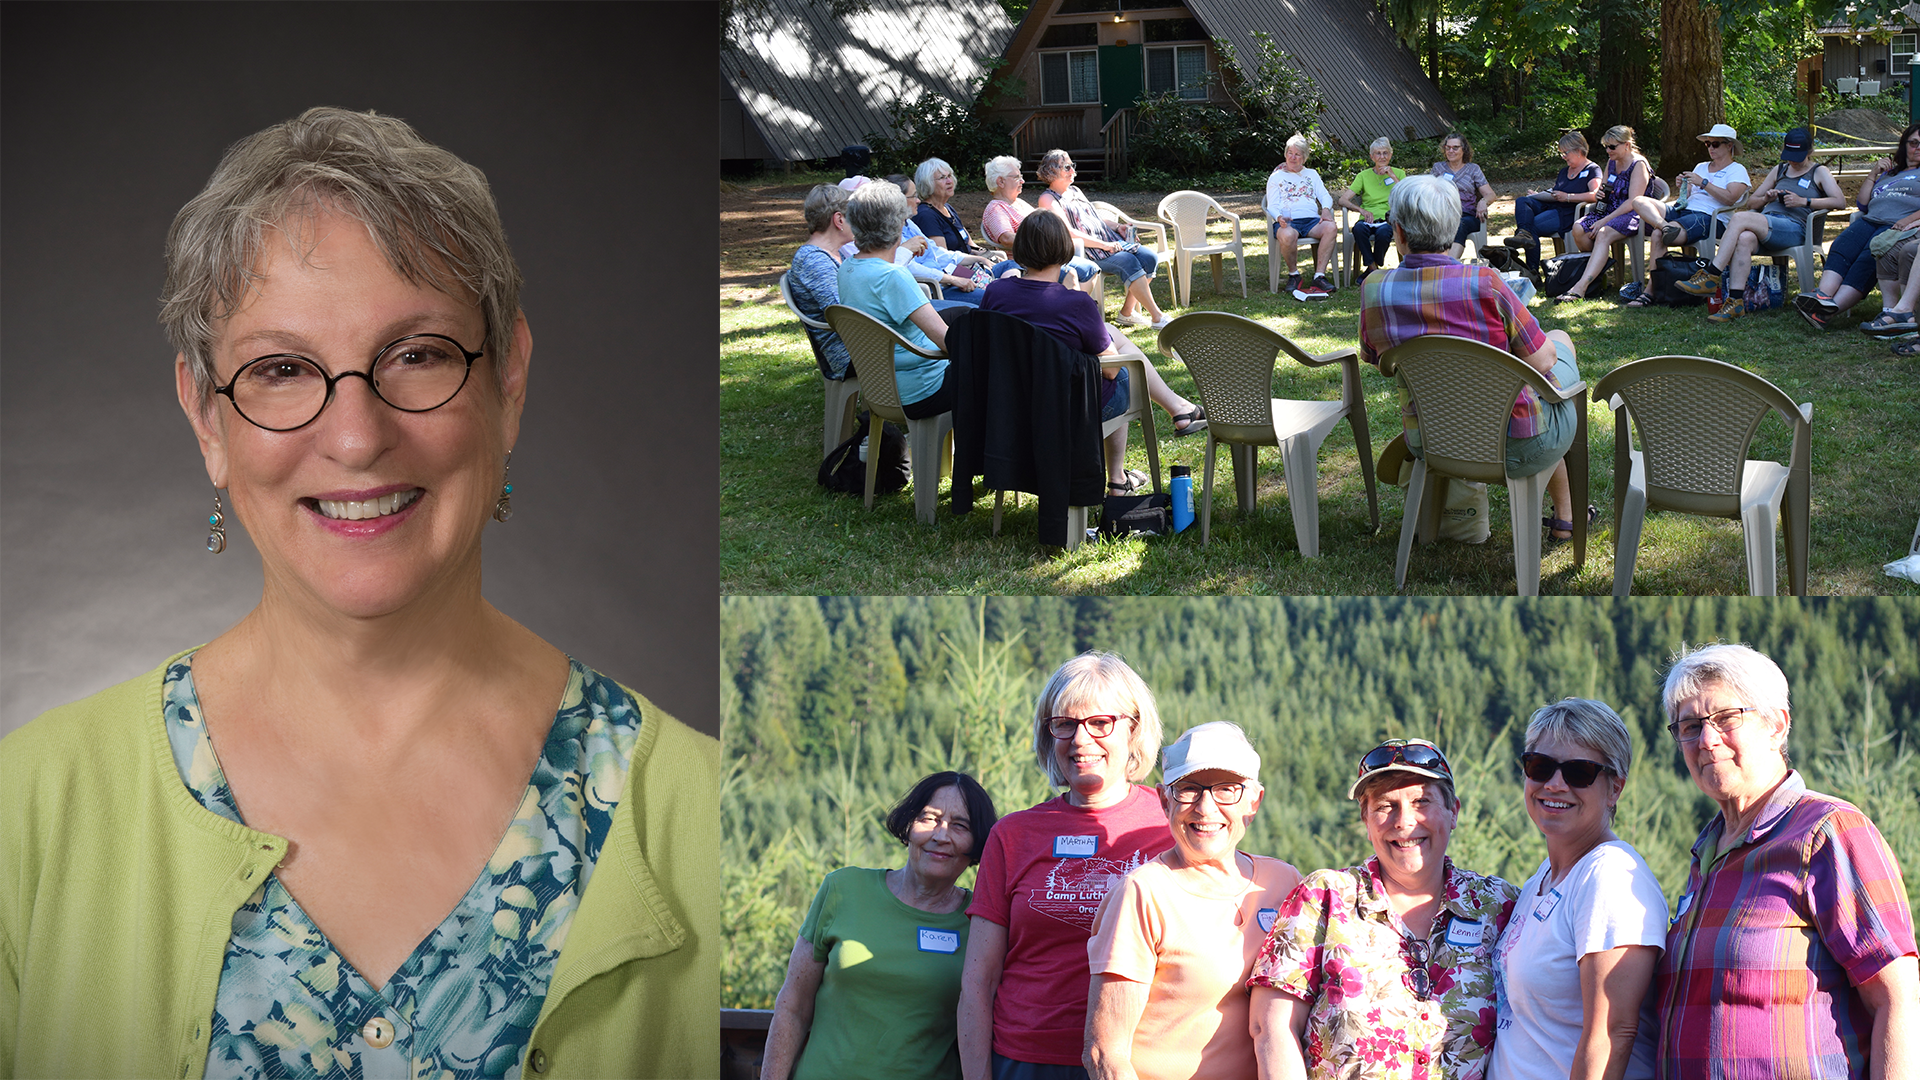 A collage of three images, one is a headshot of Barbara Punch, two depict groups of women doing activities at camp.